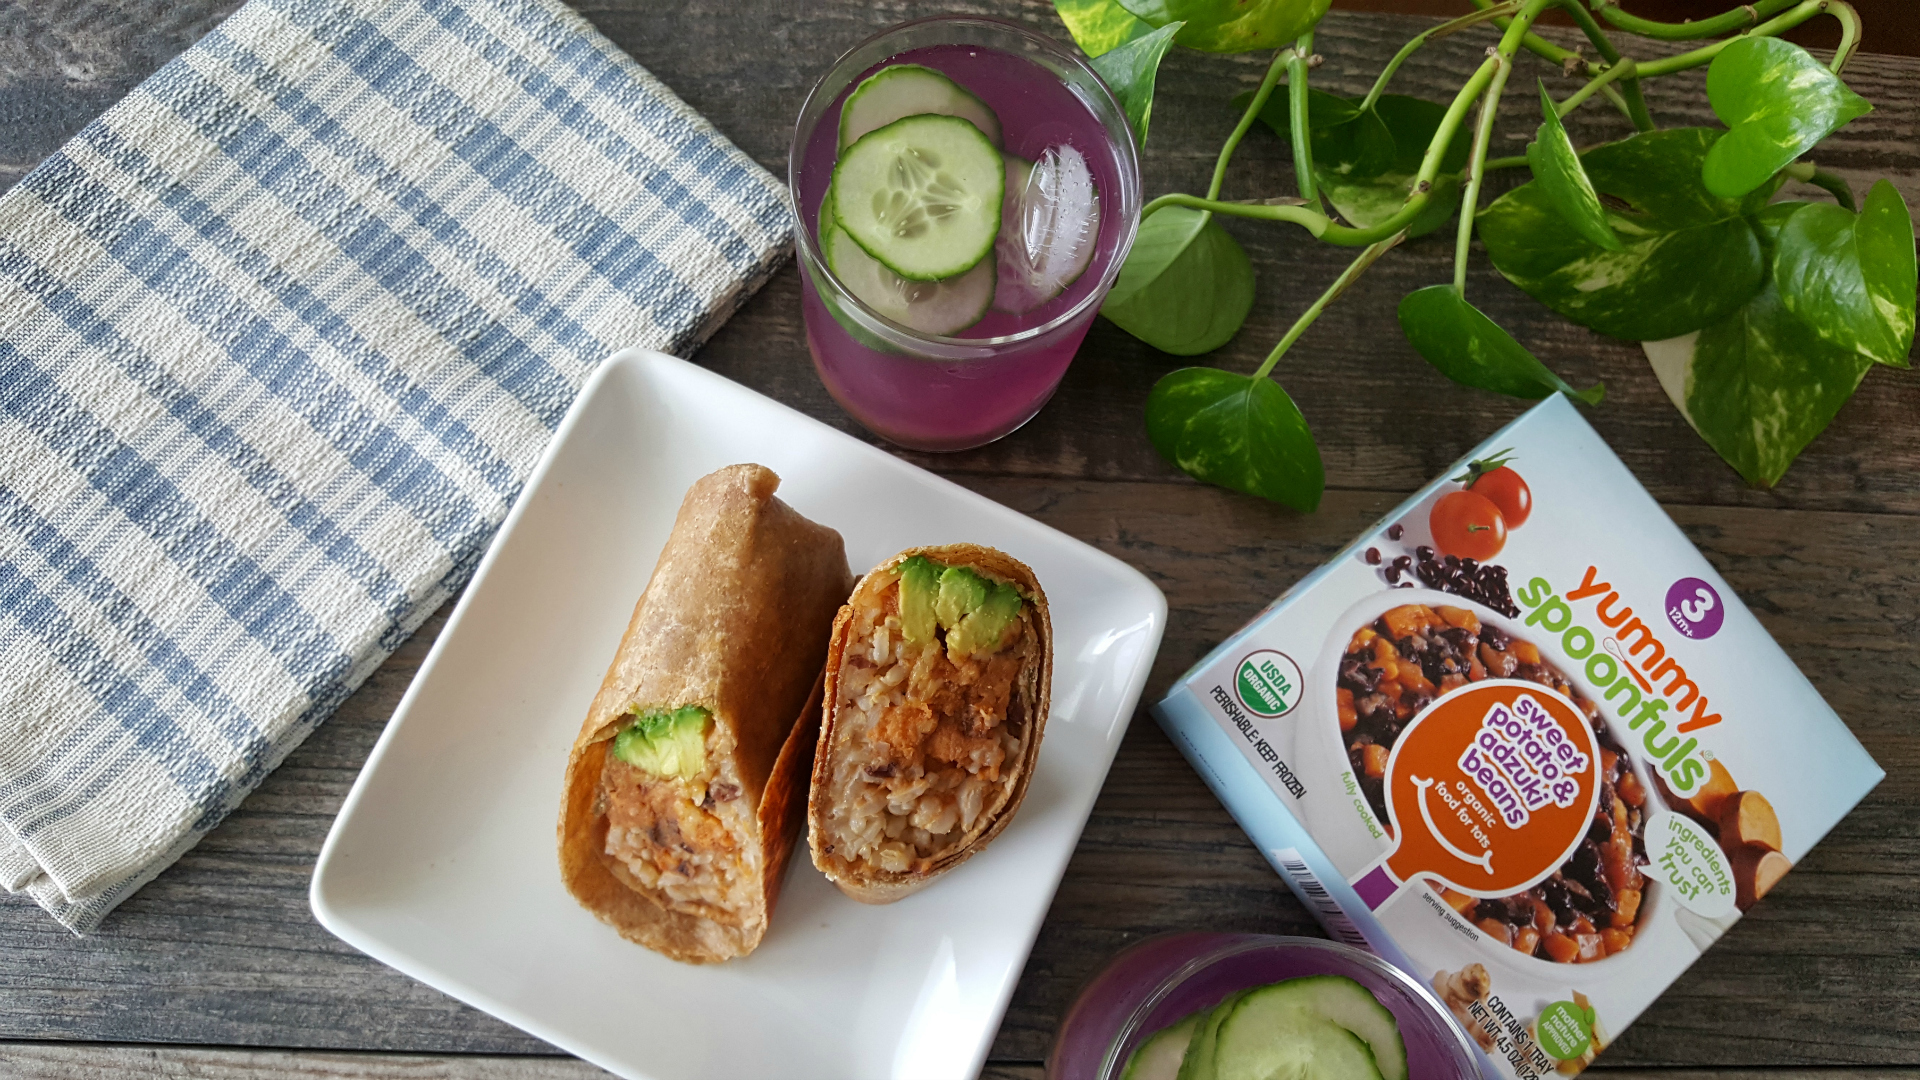 In the Kitchen with Agatha: Sweet Potato & Adzuki Bean Breakfast Burritos